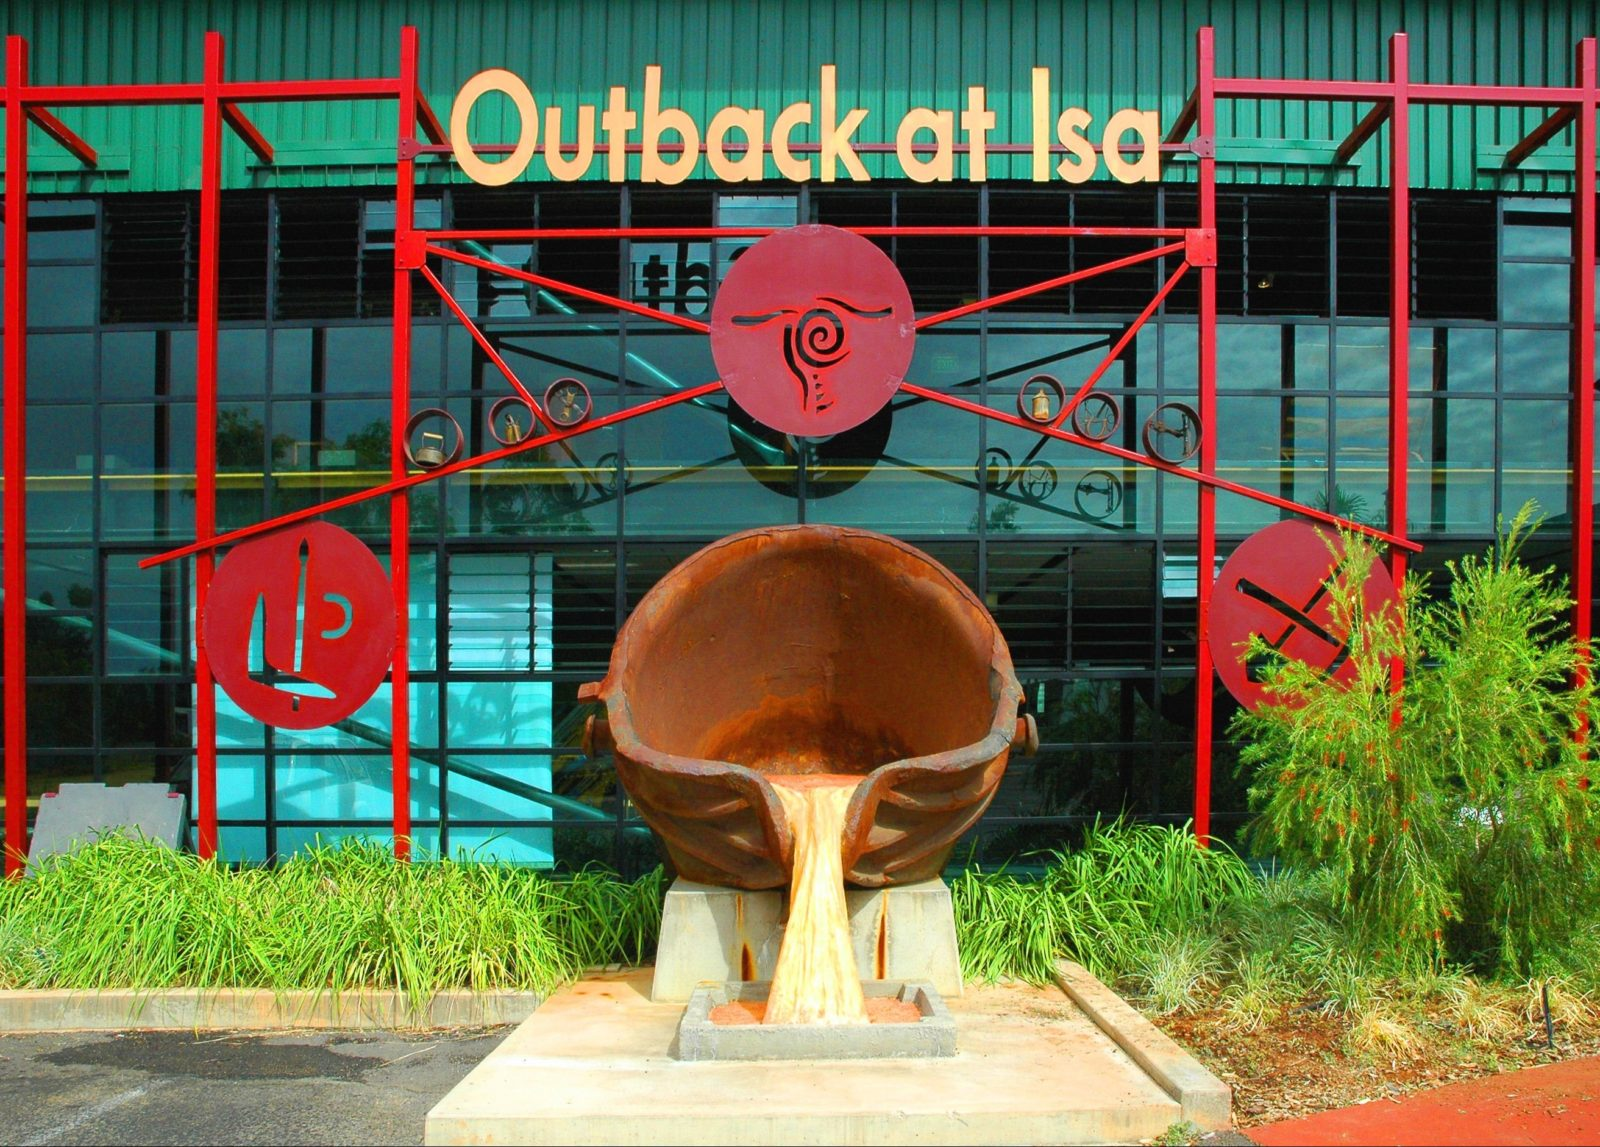 Outback At Isa